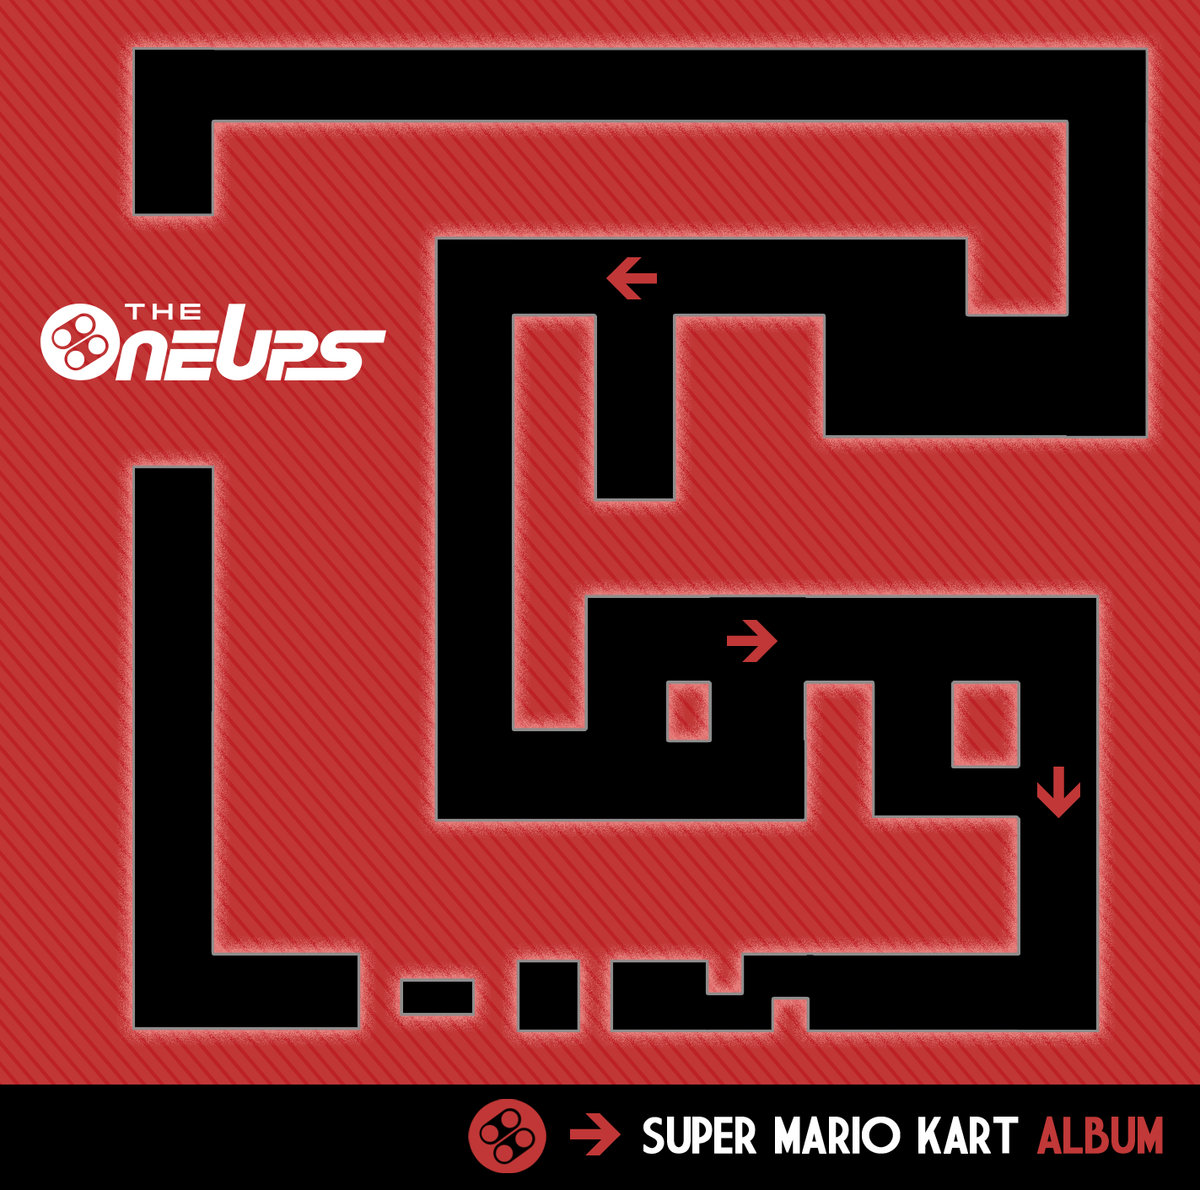 Super Mario Kart Album | The OneUps